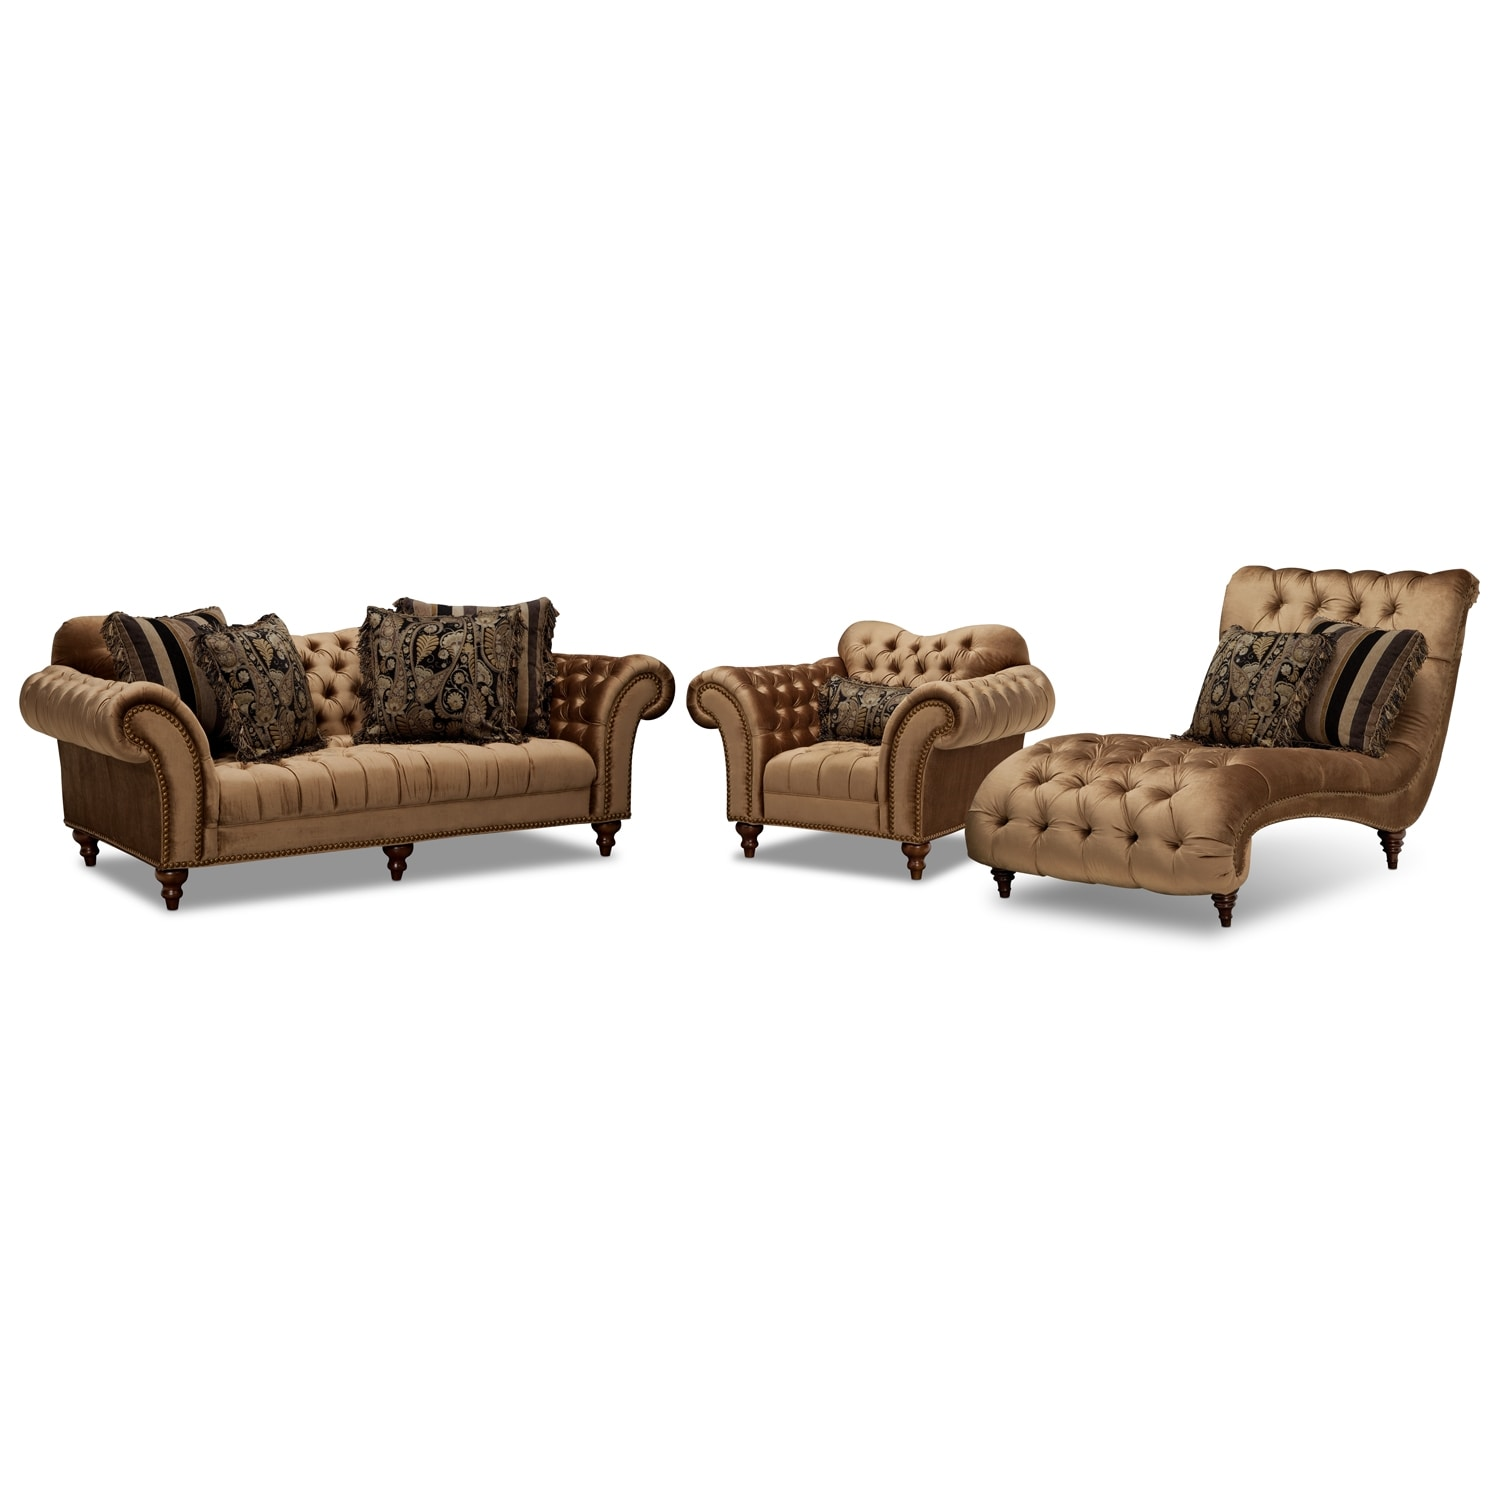 Brittney Sofa, Chaise and Chair Set - Bronze